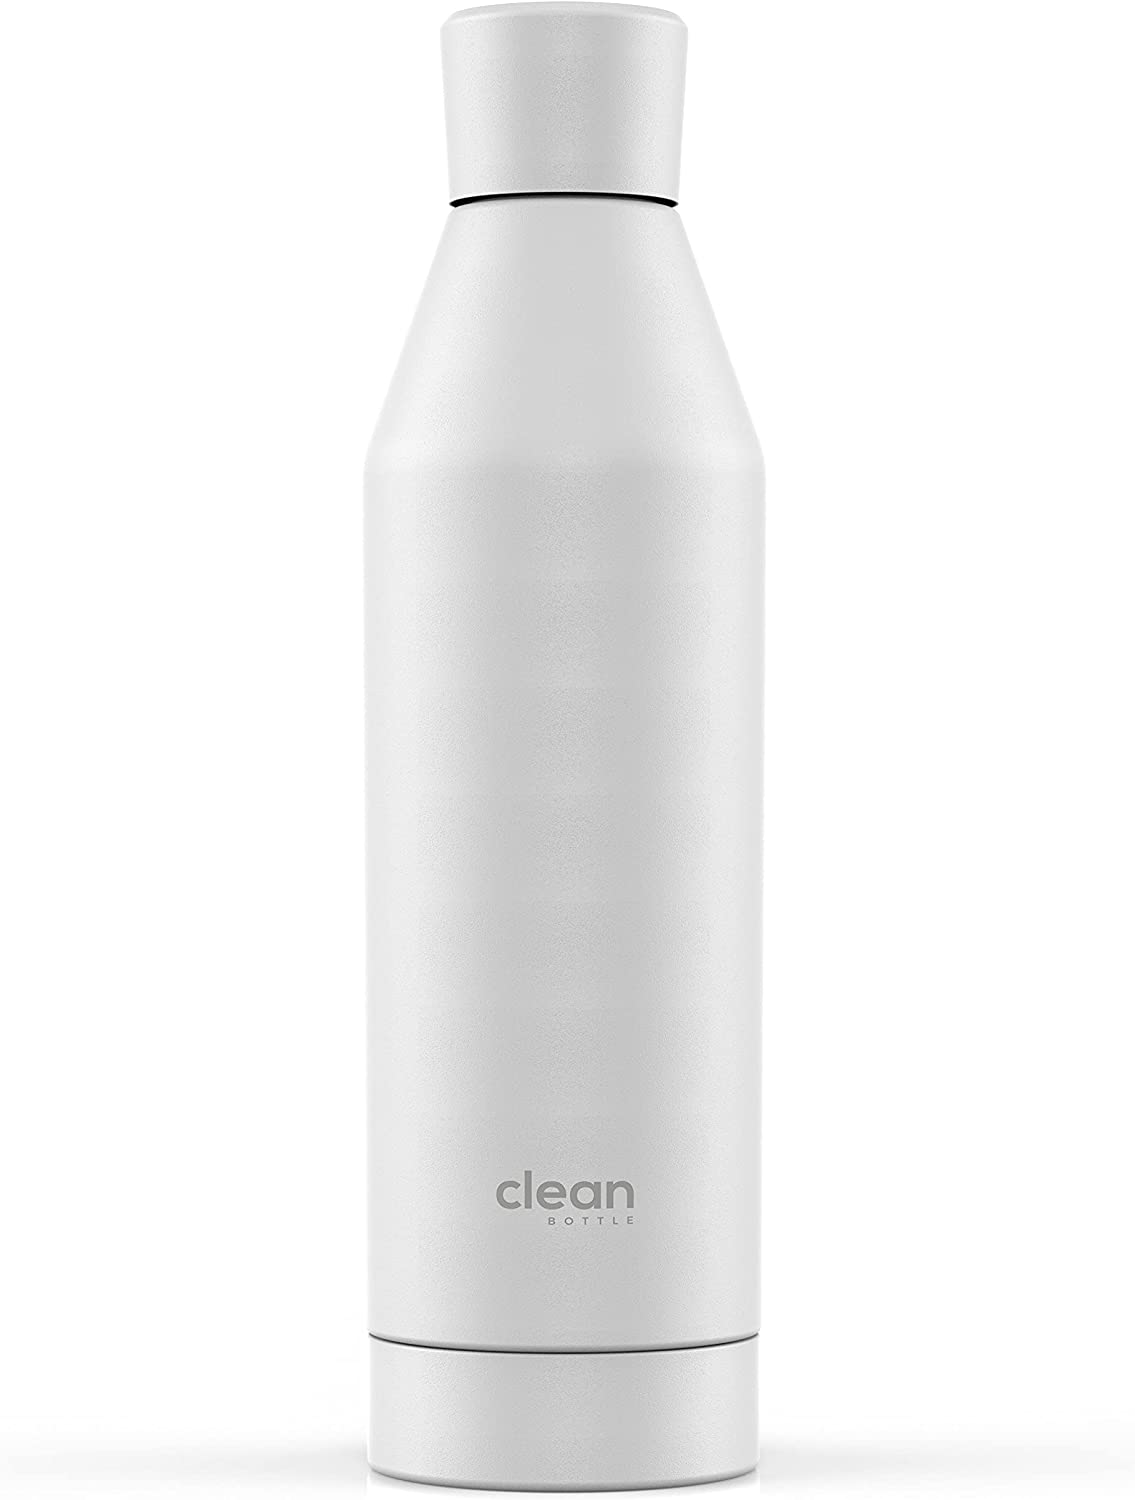 Omaha Mall The Clean Hydration Co Canteen Selling Easy to 17 Insulat Vacuum